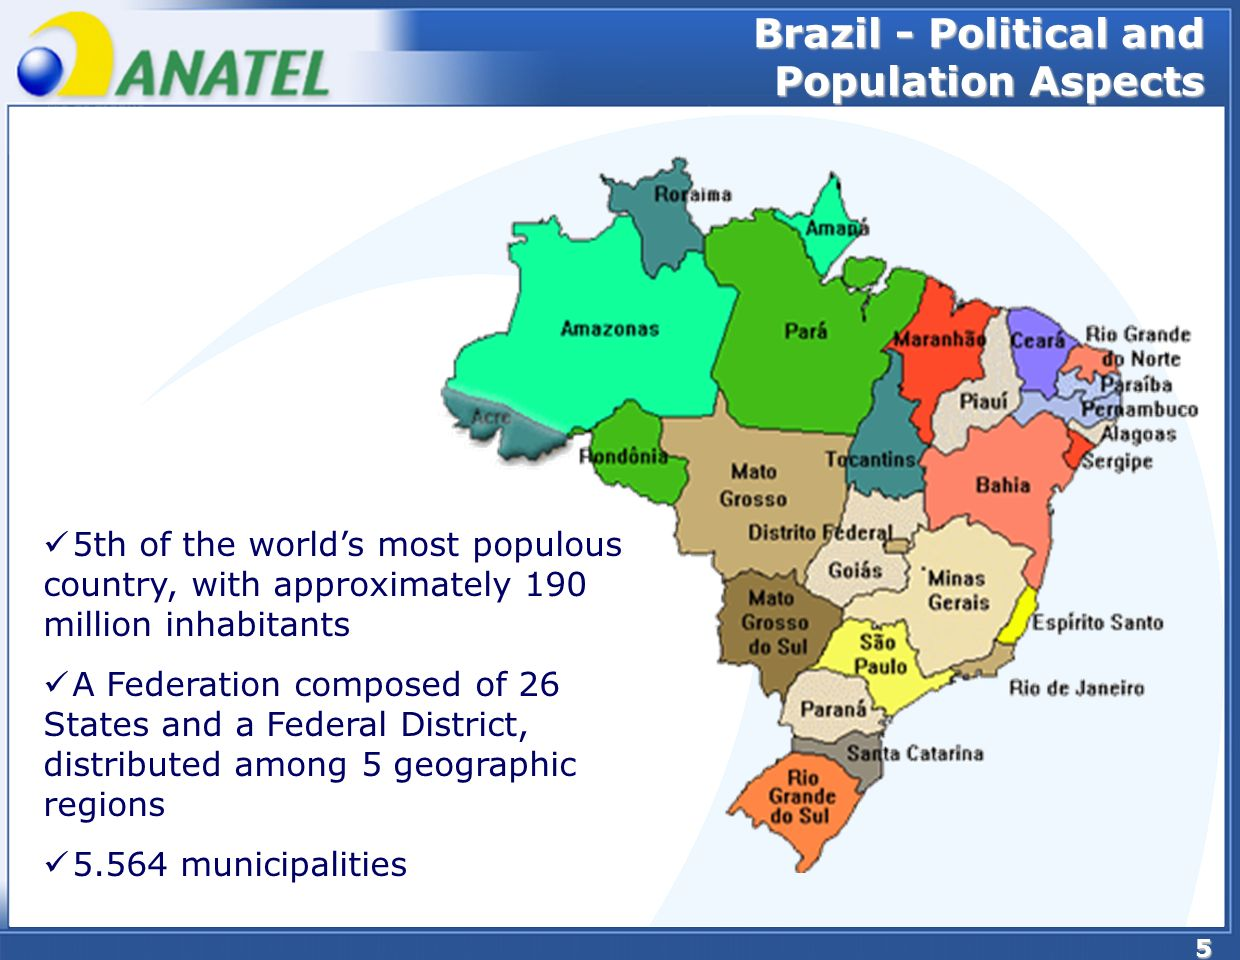 16 Brazilian Backhaul Backhaul is a part of the PSTN high capacity core network, connecting the access network to the incumbents Backbone The Brazilians Government Policy, therefore, was to spread the Backhaul into all Brazilian municipalities as a Universal Service Goal Backhaul MUNICIPALITY Backbone